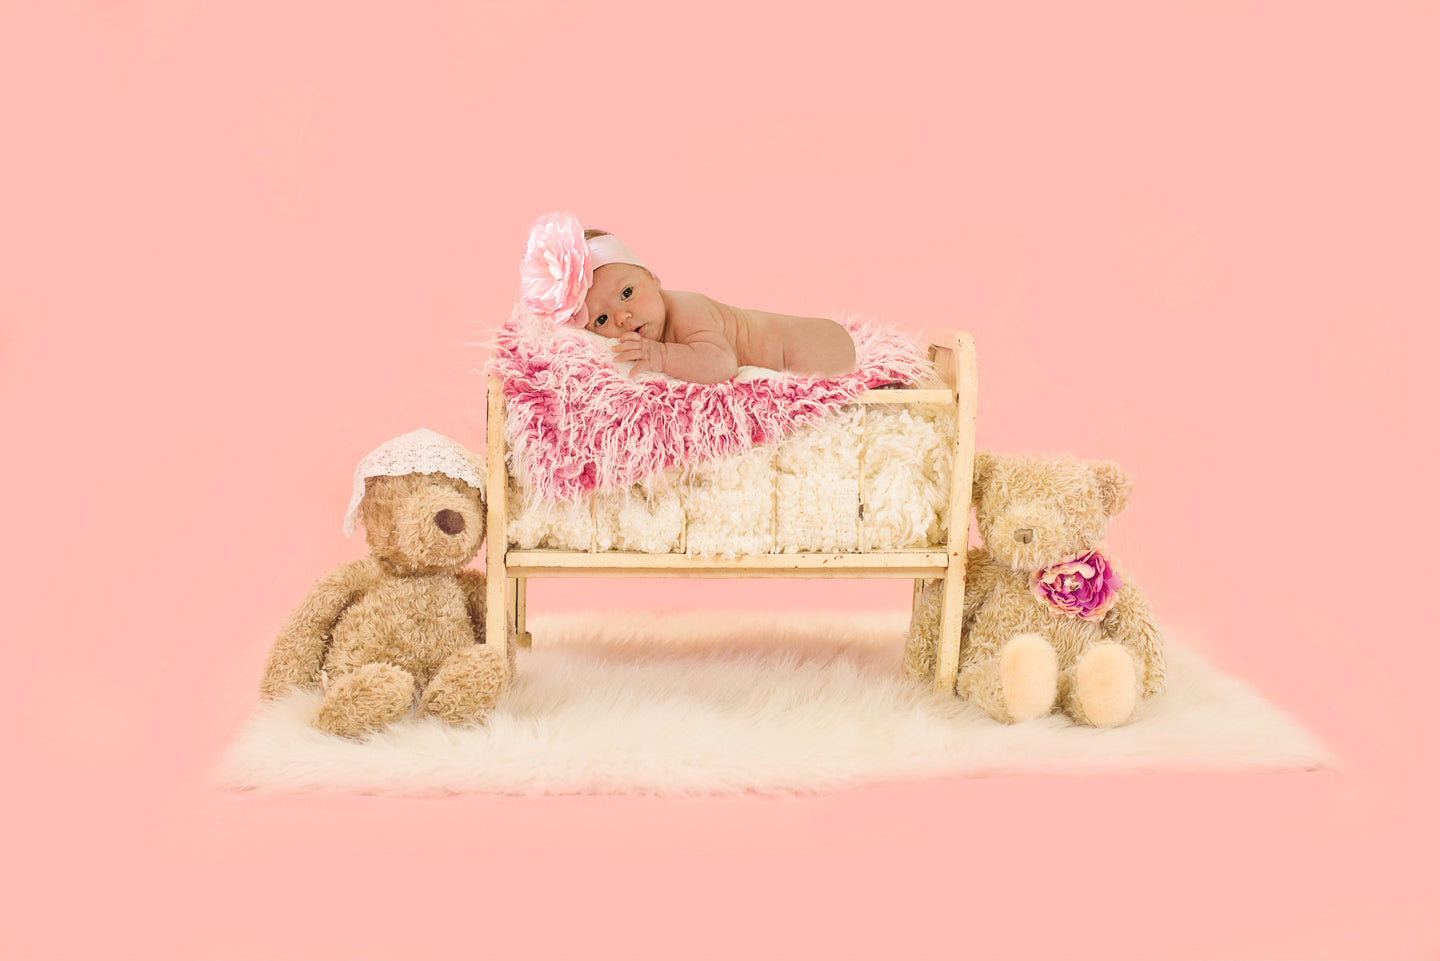 Baby in a Cradle with Teddy Bear